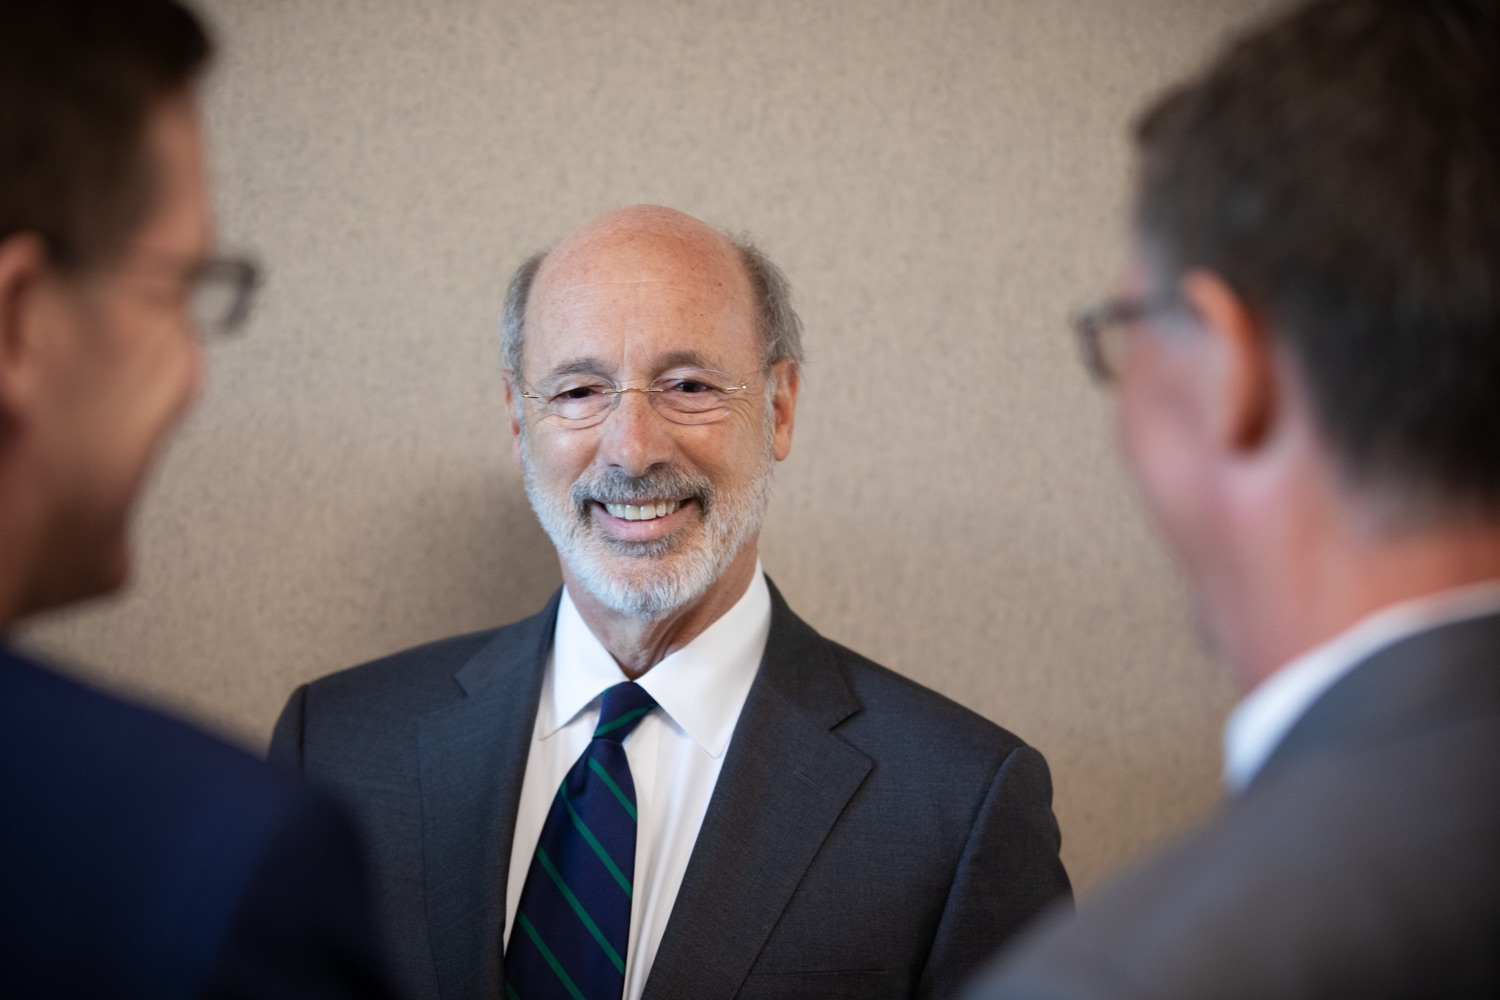 "<a href=""http://filesource.abacast.com/commonwealthofpa/photo/17467_gov_opioids_dz_015.JPG"" target=""_blank"">⇣ Download Photo<br></a>Boalsburg, PA  Governor Tom Wolf speaking with summit attendees. Governor Tom Wolf today kicked off his administrations first Opioid Command Center Opioid Summit: Think Globally, Act Locally, which brought together 200 individuals helping their communities fight the opioid crisis, including community organizations, non-profits, schools, health care workers, addiction and recovery specialists, and families affected by the opioid crisis.  Tuesday, October 1, 2019Harrisburg, PA  Governor Tom Wolf today kicked off his administrations first Opioid Command Center Opioid Summit: Think Globally, Act Locally, which brought together 200 individuals helping their communities fight the opioid crisis, including community organizations, non-profits, schools, health care workers, addiction and recovery specialists, and families affected by the opioid crisis.  Tuesday, October 1, 2019"